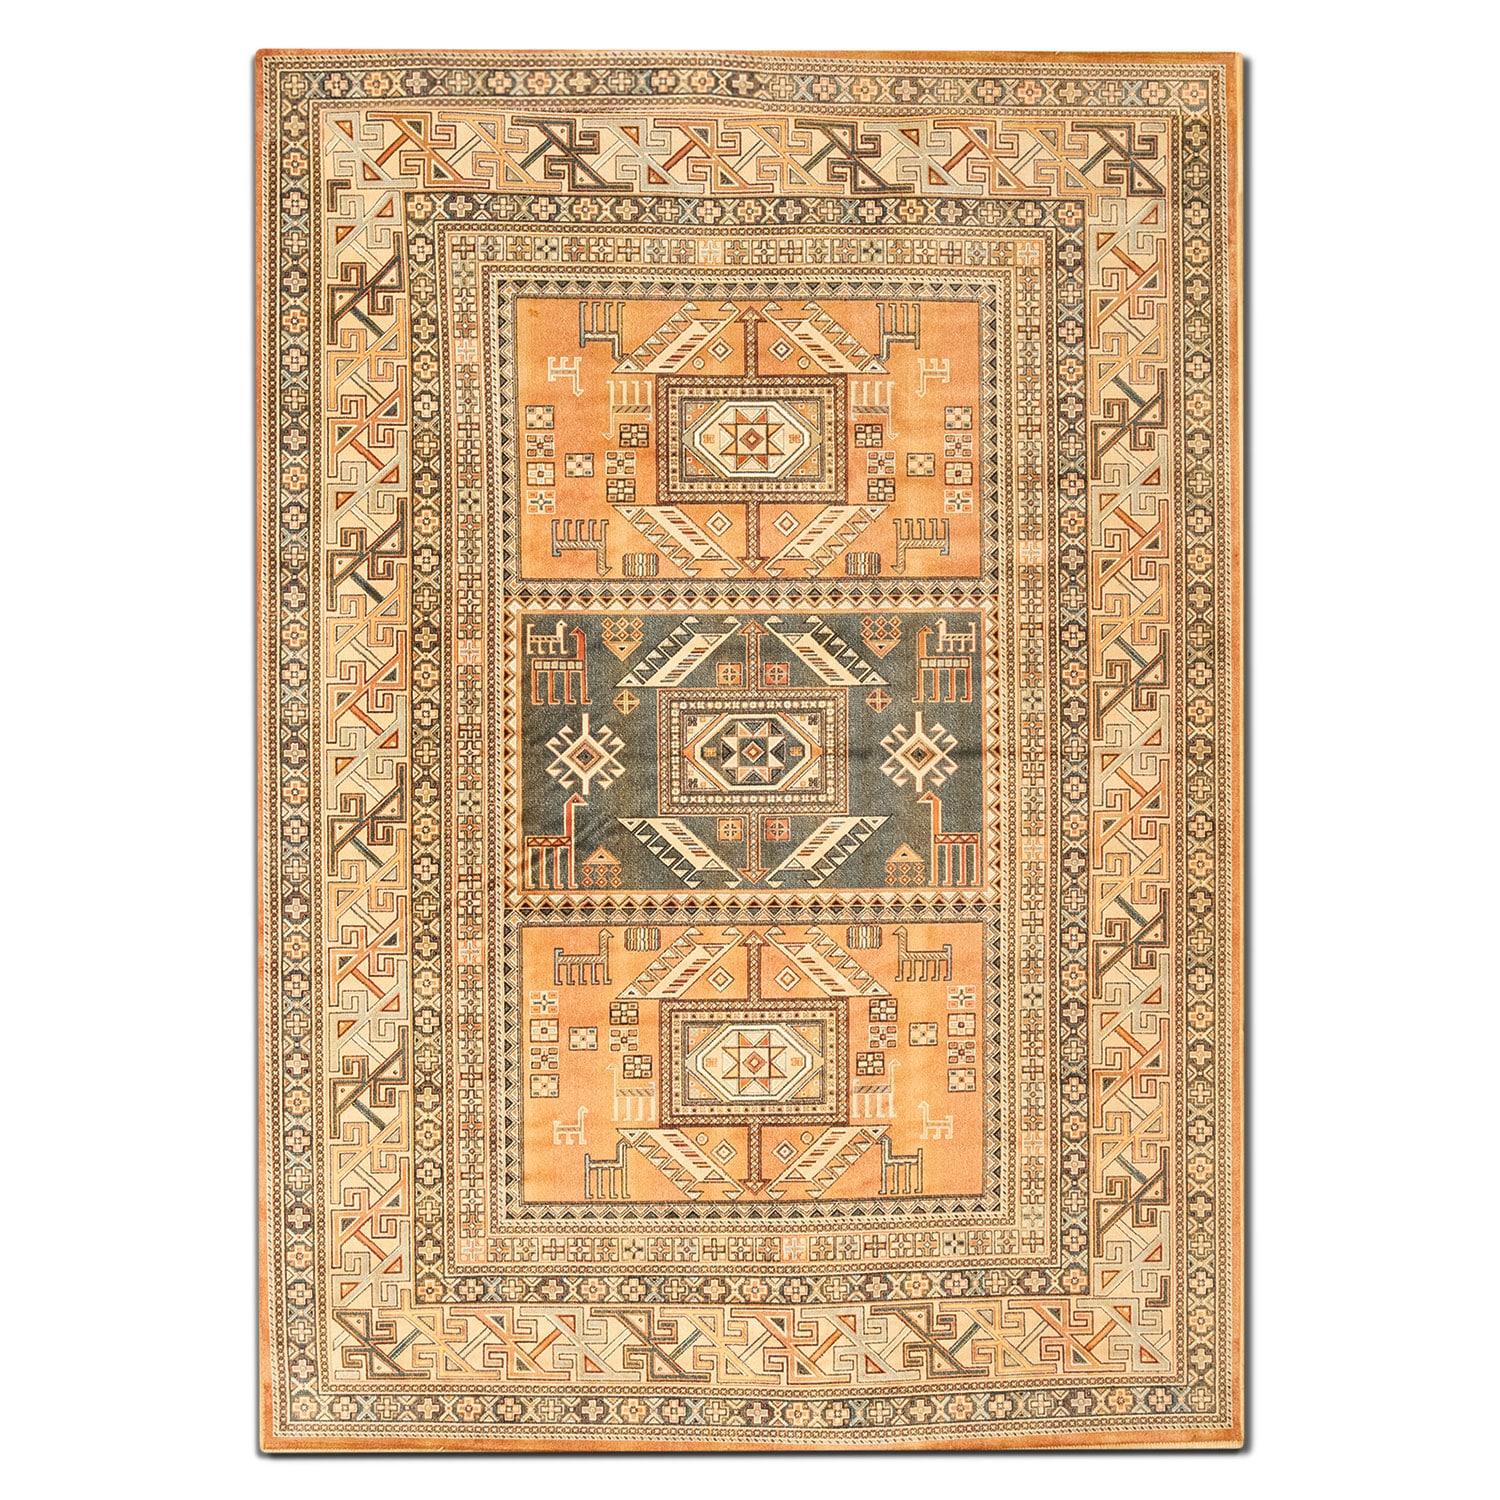 Rugs - Sonoma 5' x 8' Area Rug - Aqua and Copper